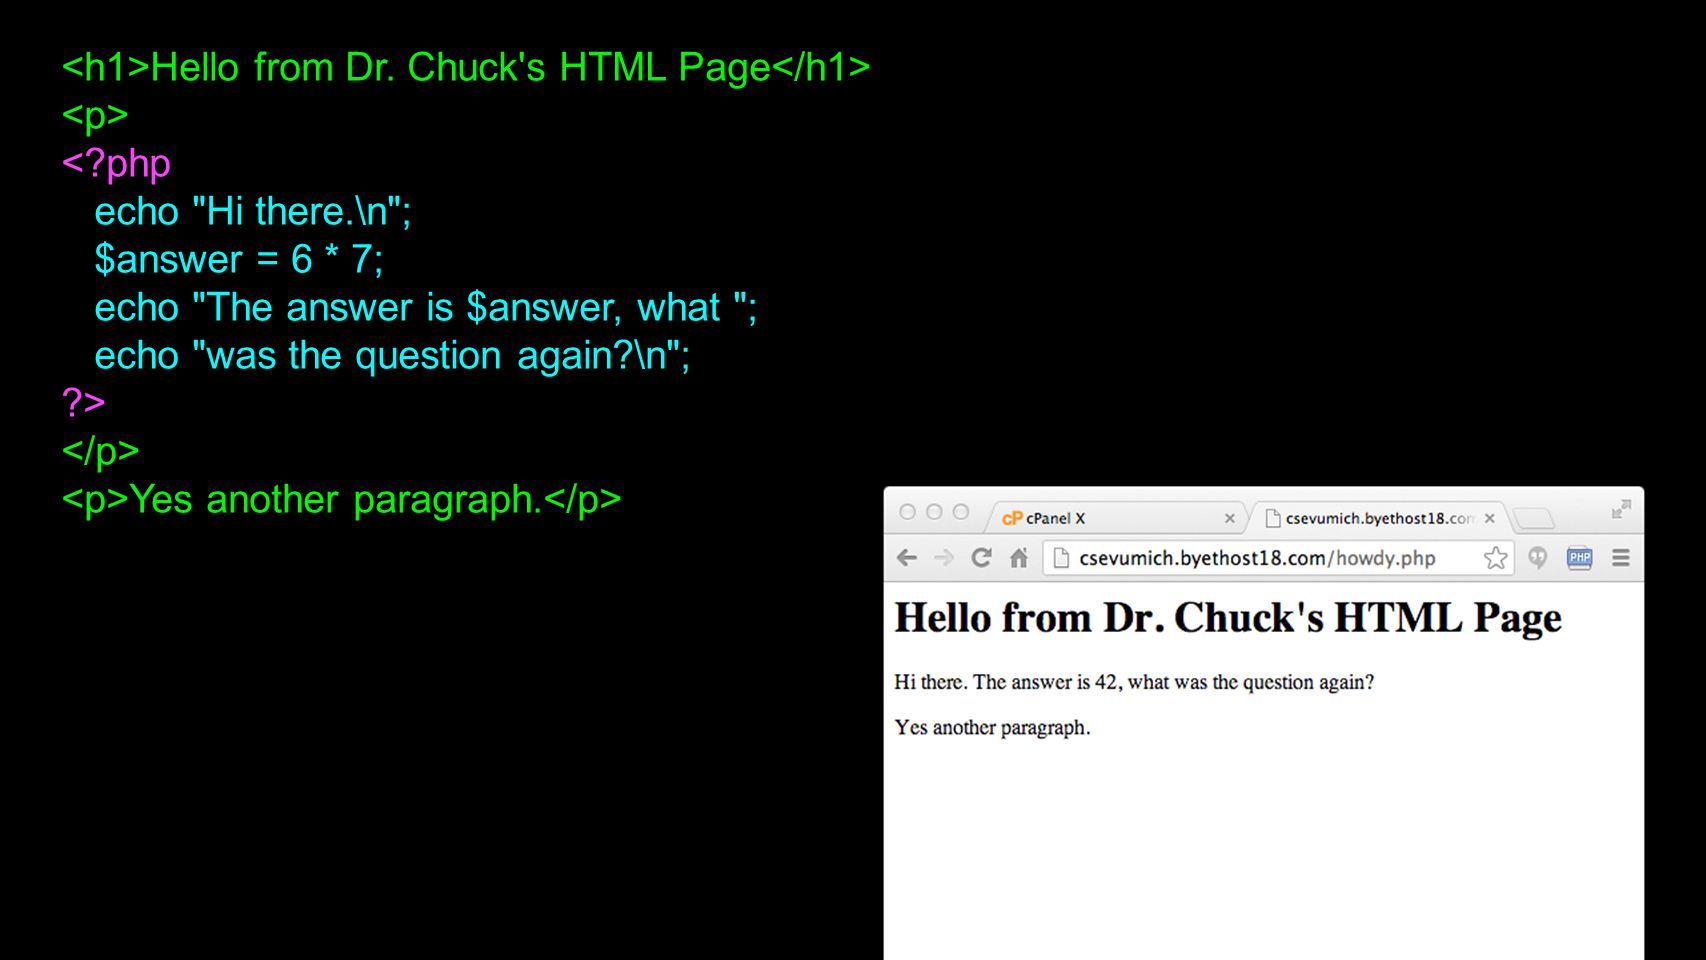 Hello from Dr. Chuck's HTML Page <?php echo